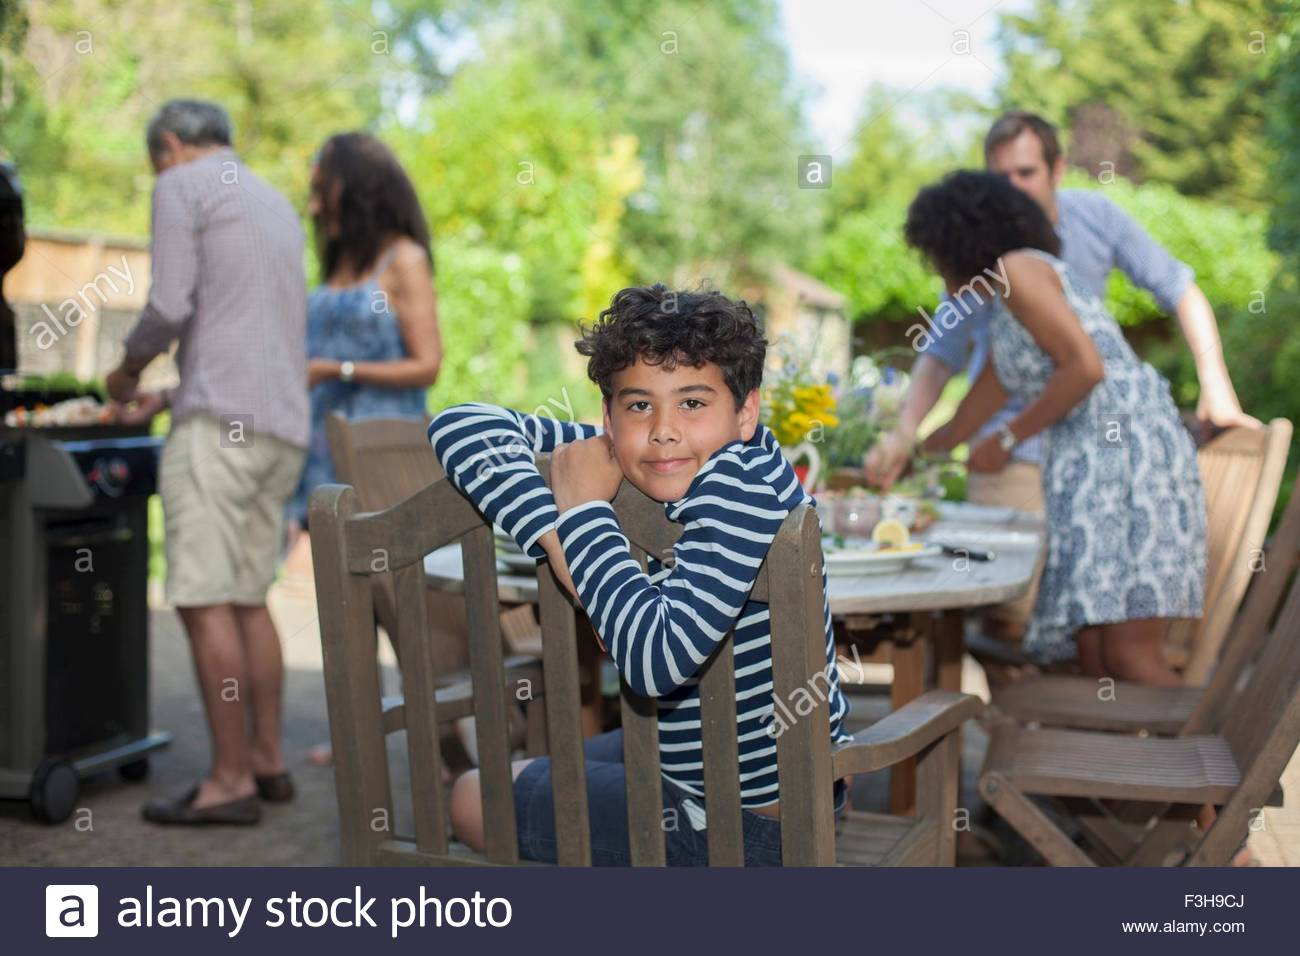 Portrait of young boy, family preparing food behind him, outdoors - Stock Image